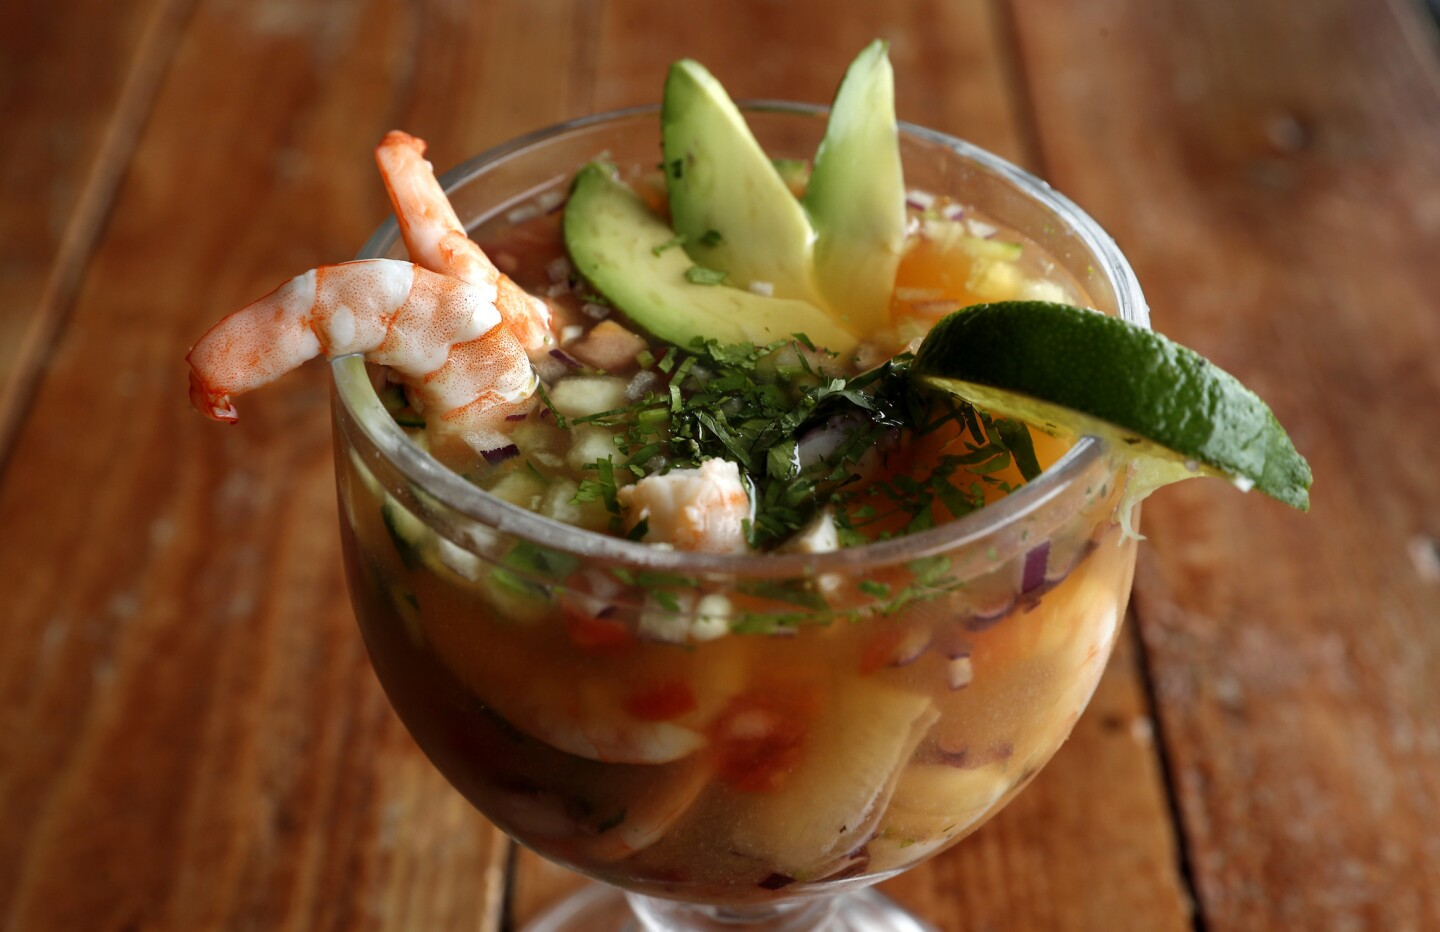 Campechana -- a shrimp, octopus and abalone cocktail -- is on the menu at El Coraloense, a family-run Mexican restaurant in Bell Gardens.